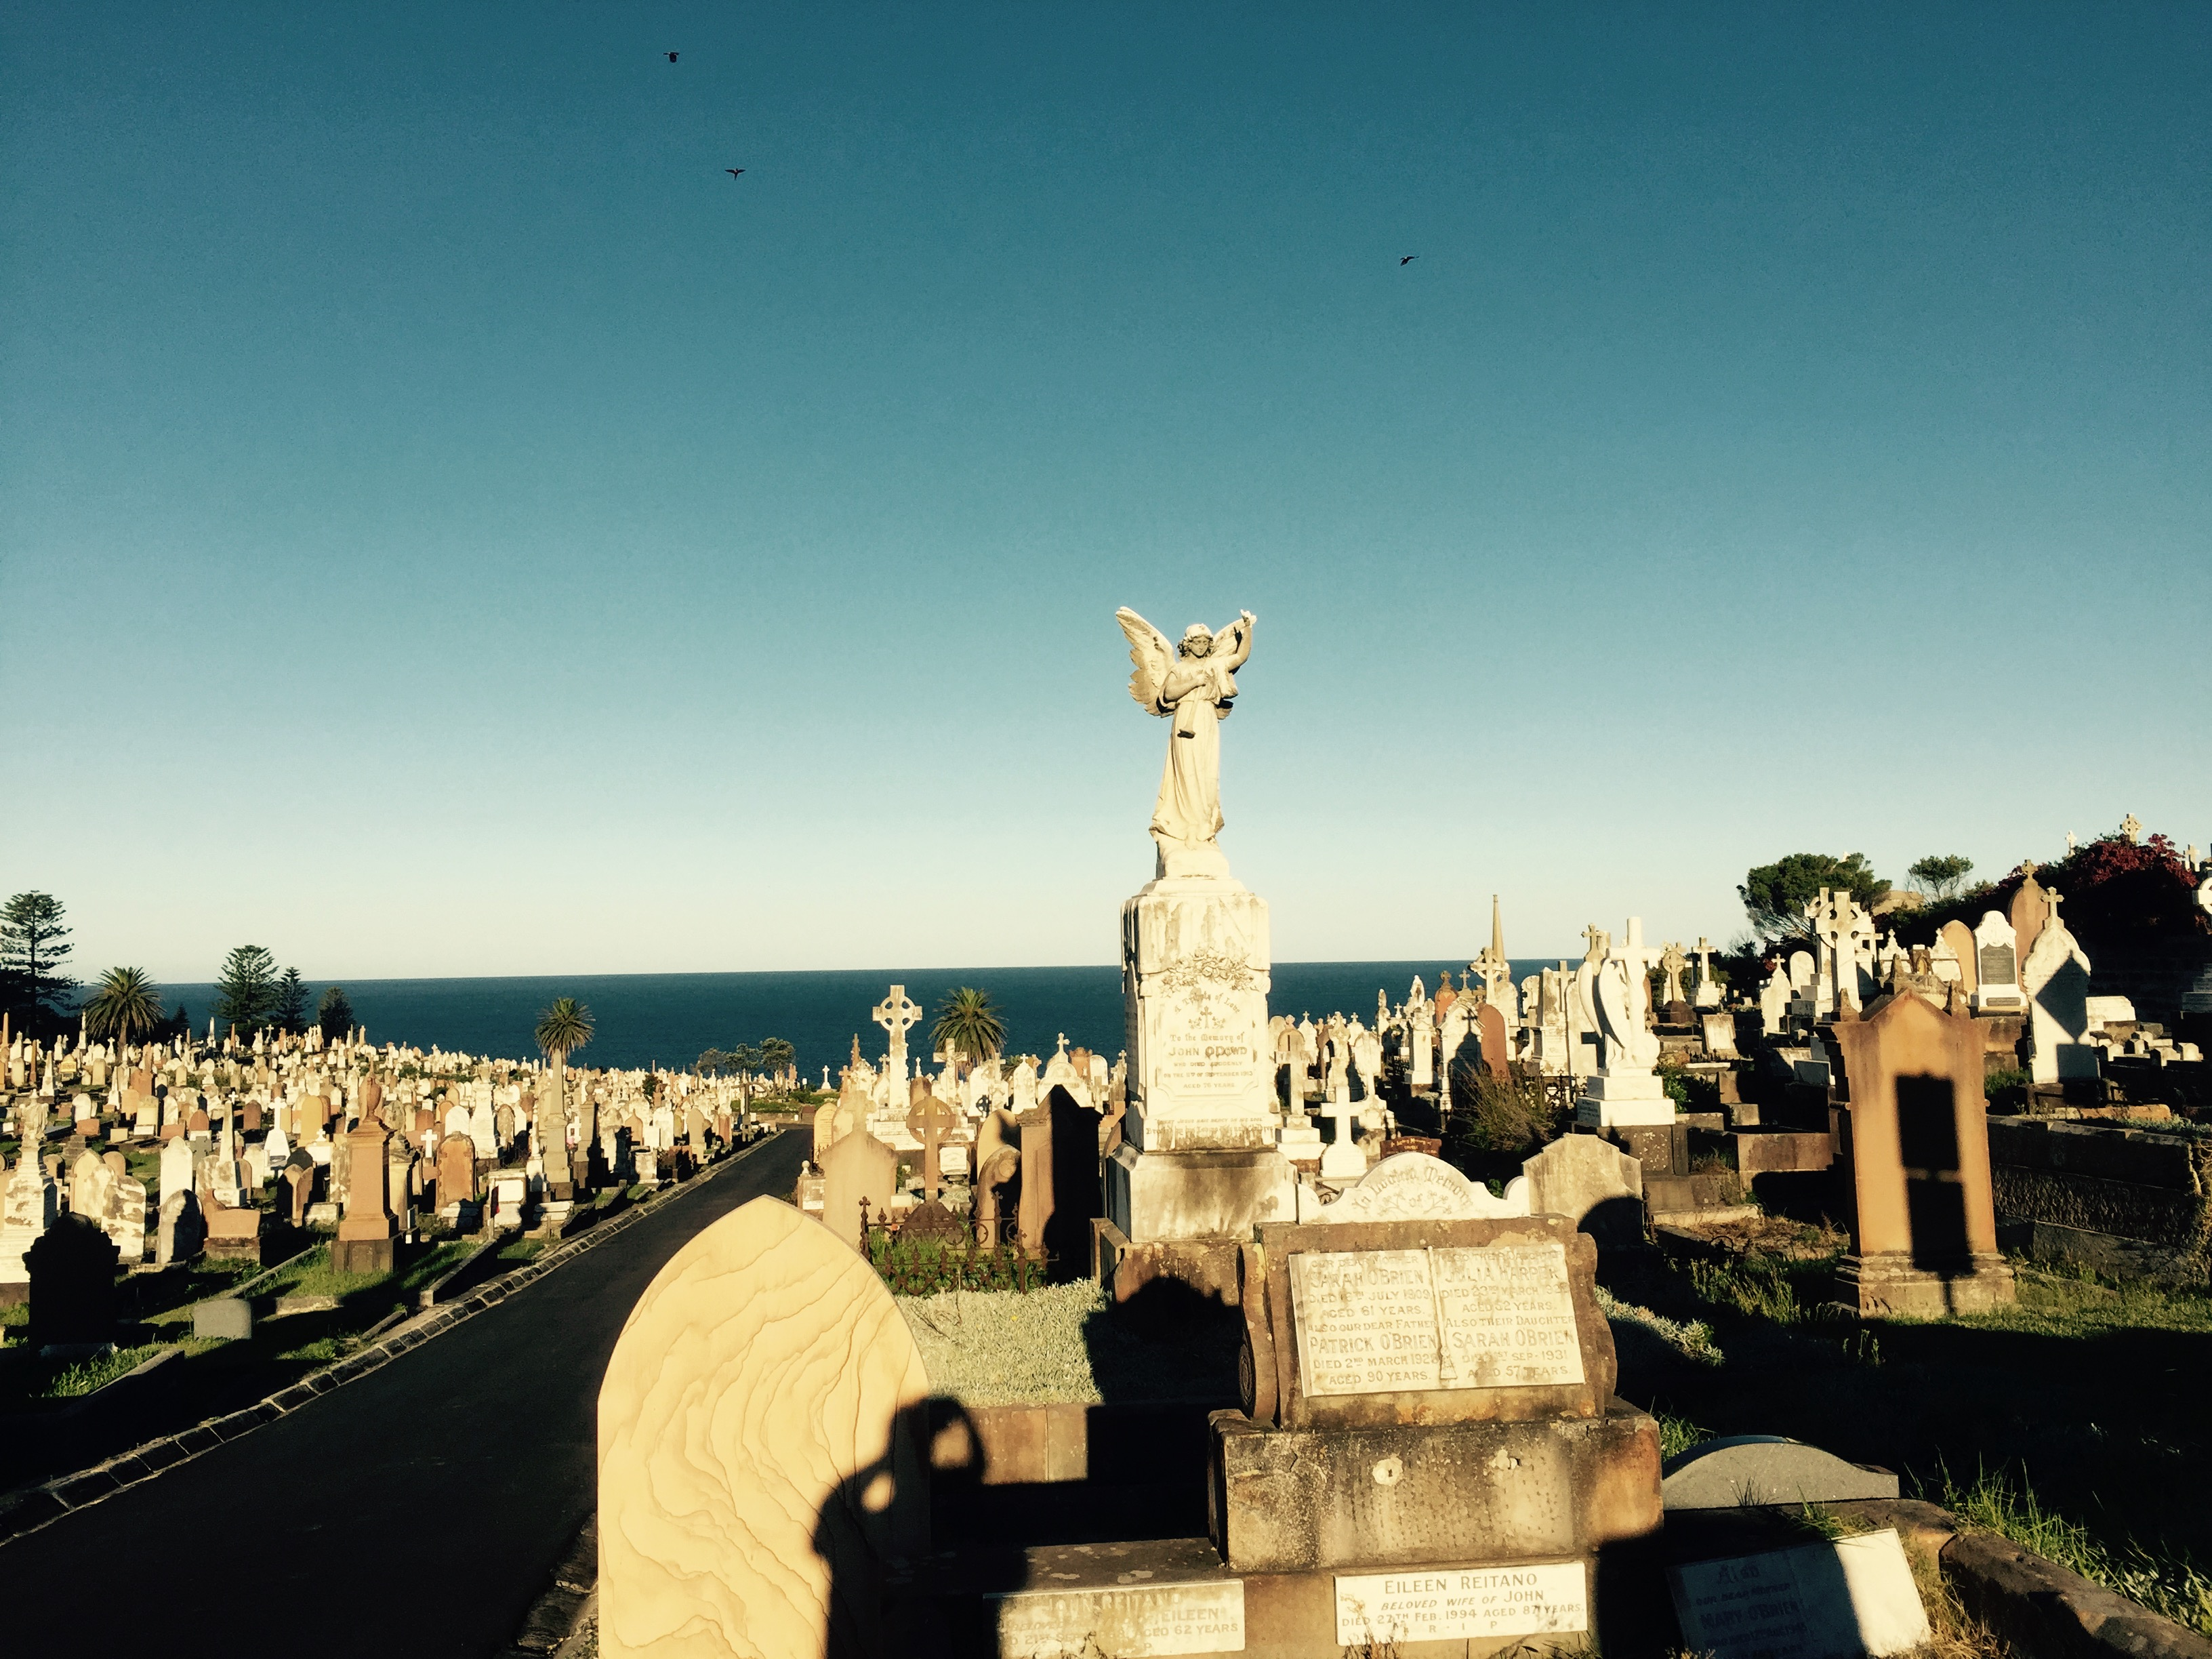 Waverley Cemetery proposal dies in council